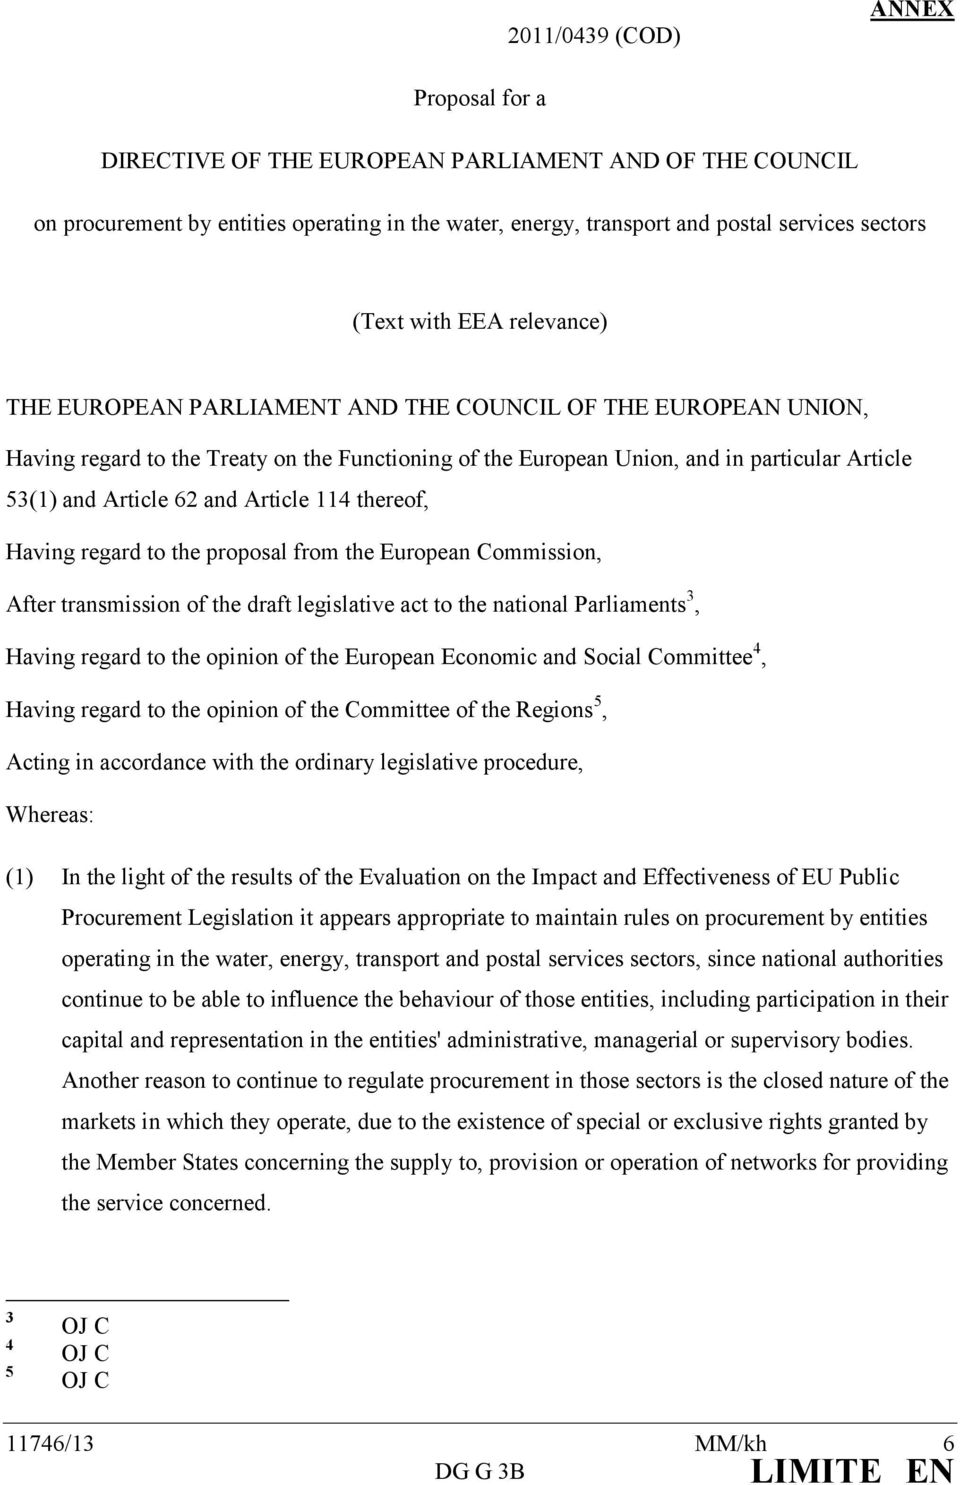 and Article 114 thereof, Having regard to the proposal from the European Commission, After transmission of the draft legislative act to the national Parliaments 3, Having regard to the opinion of the